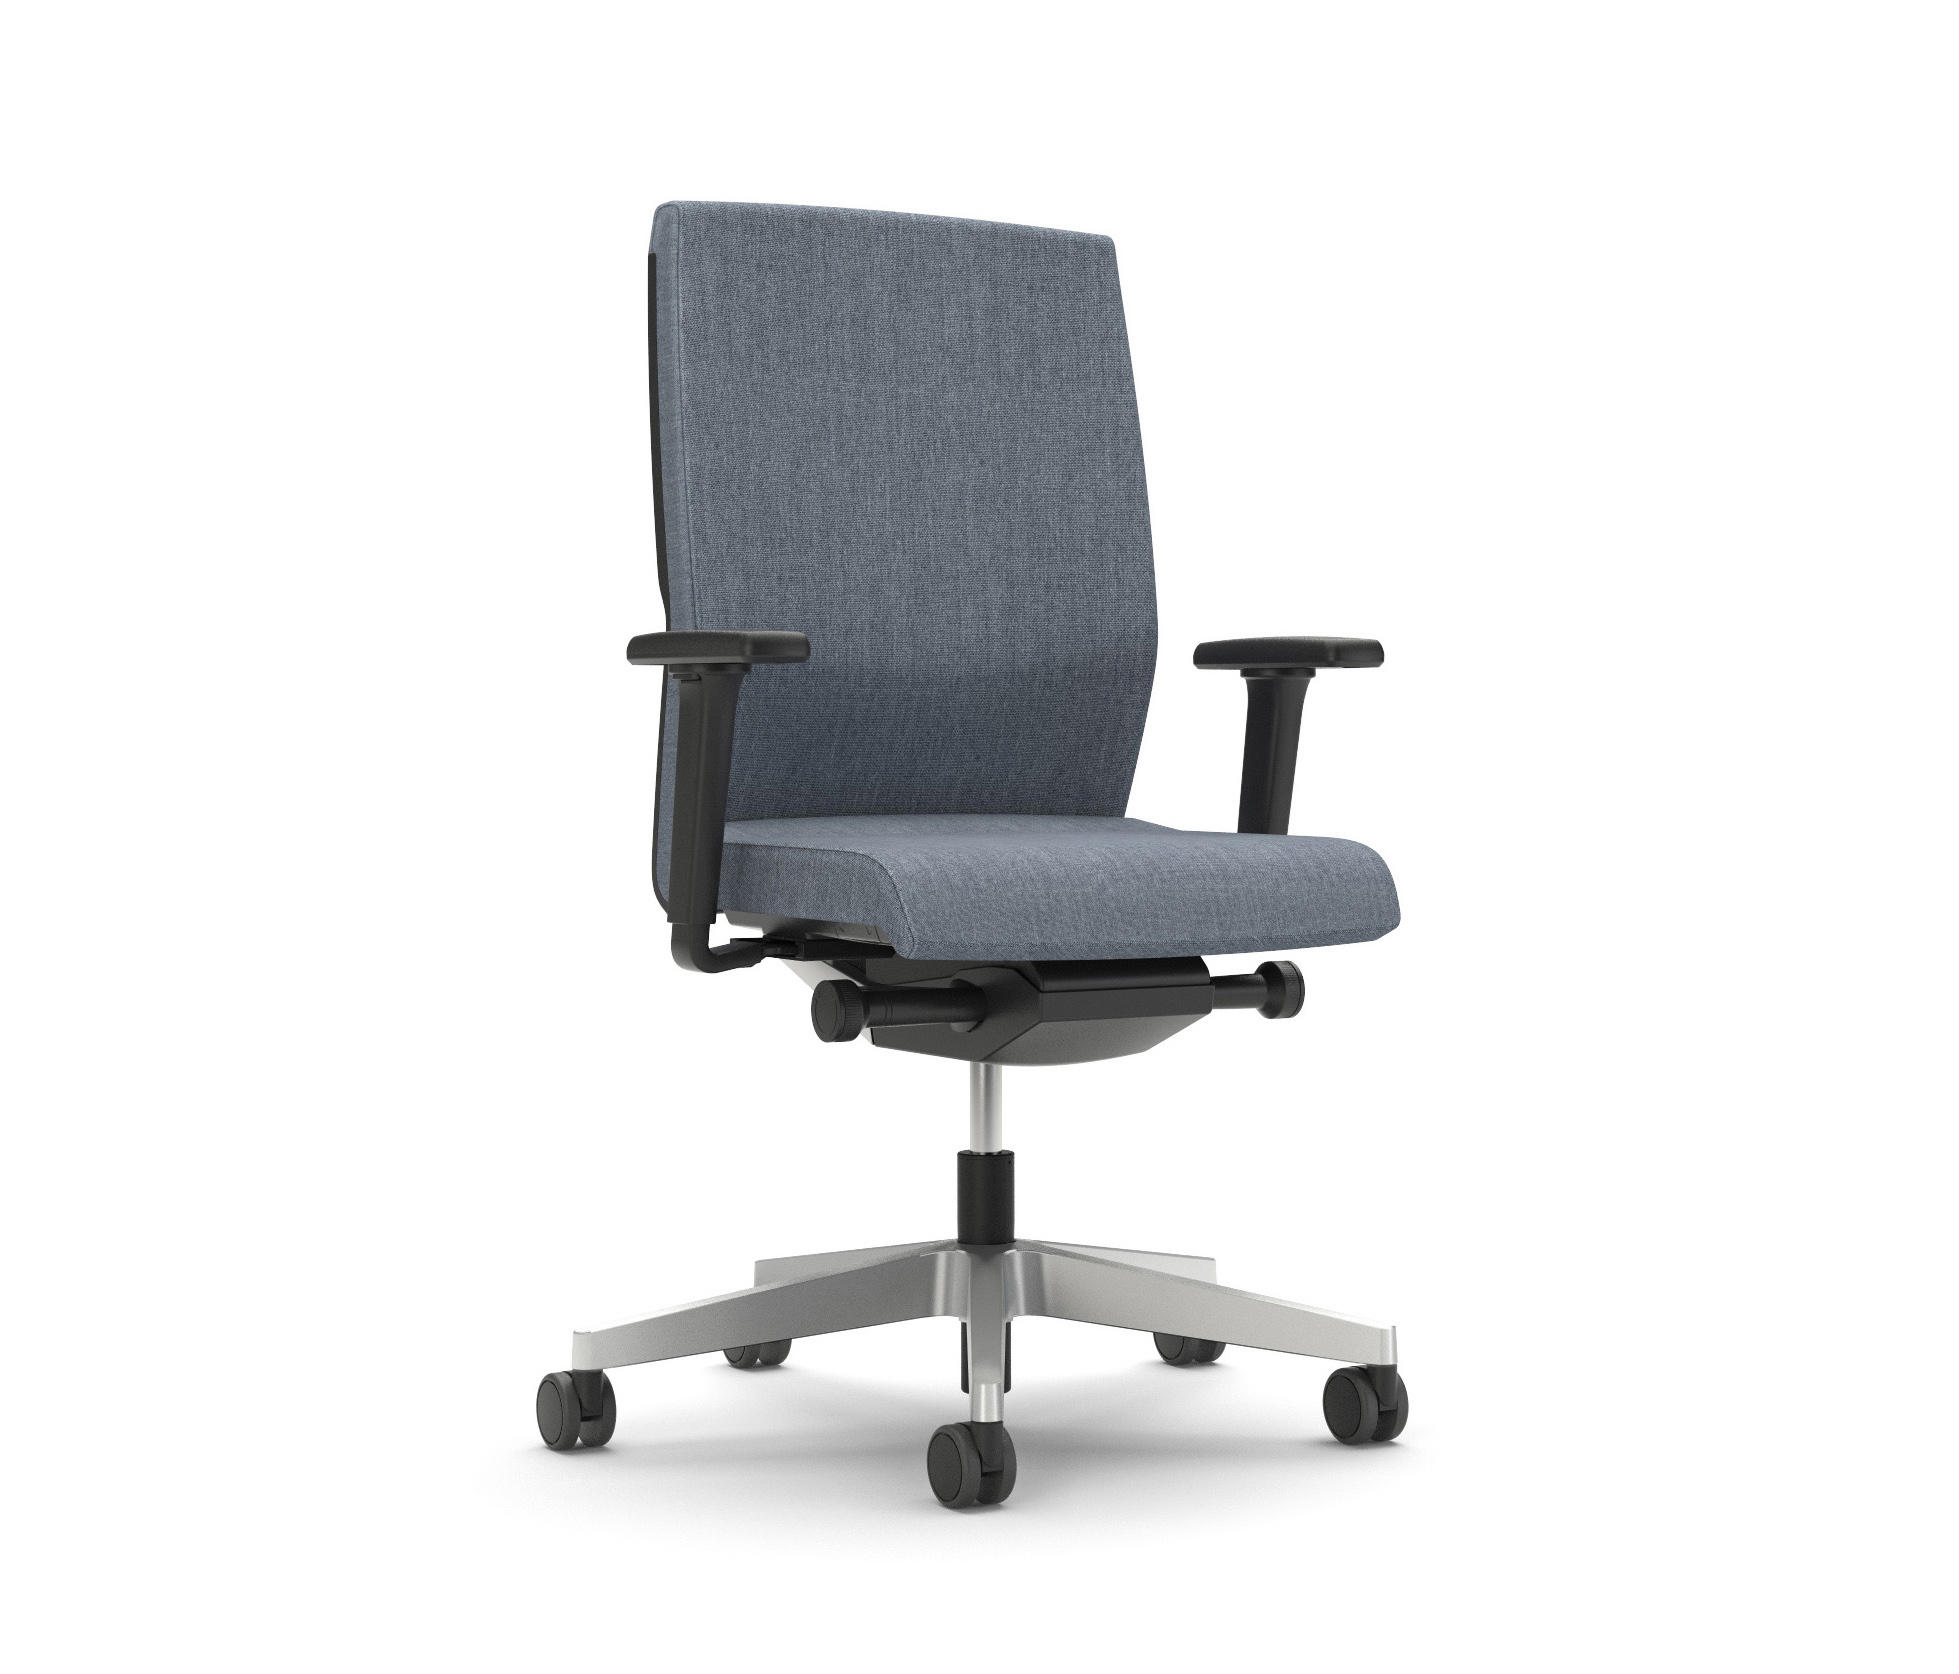 YOSTERIS3 152Y - Office chairs from Interstuhl Büromöbel GmbH & Co ...